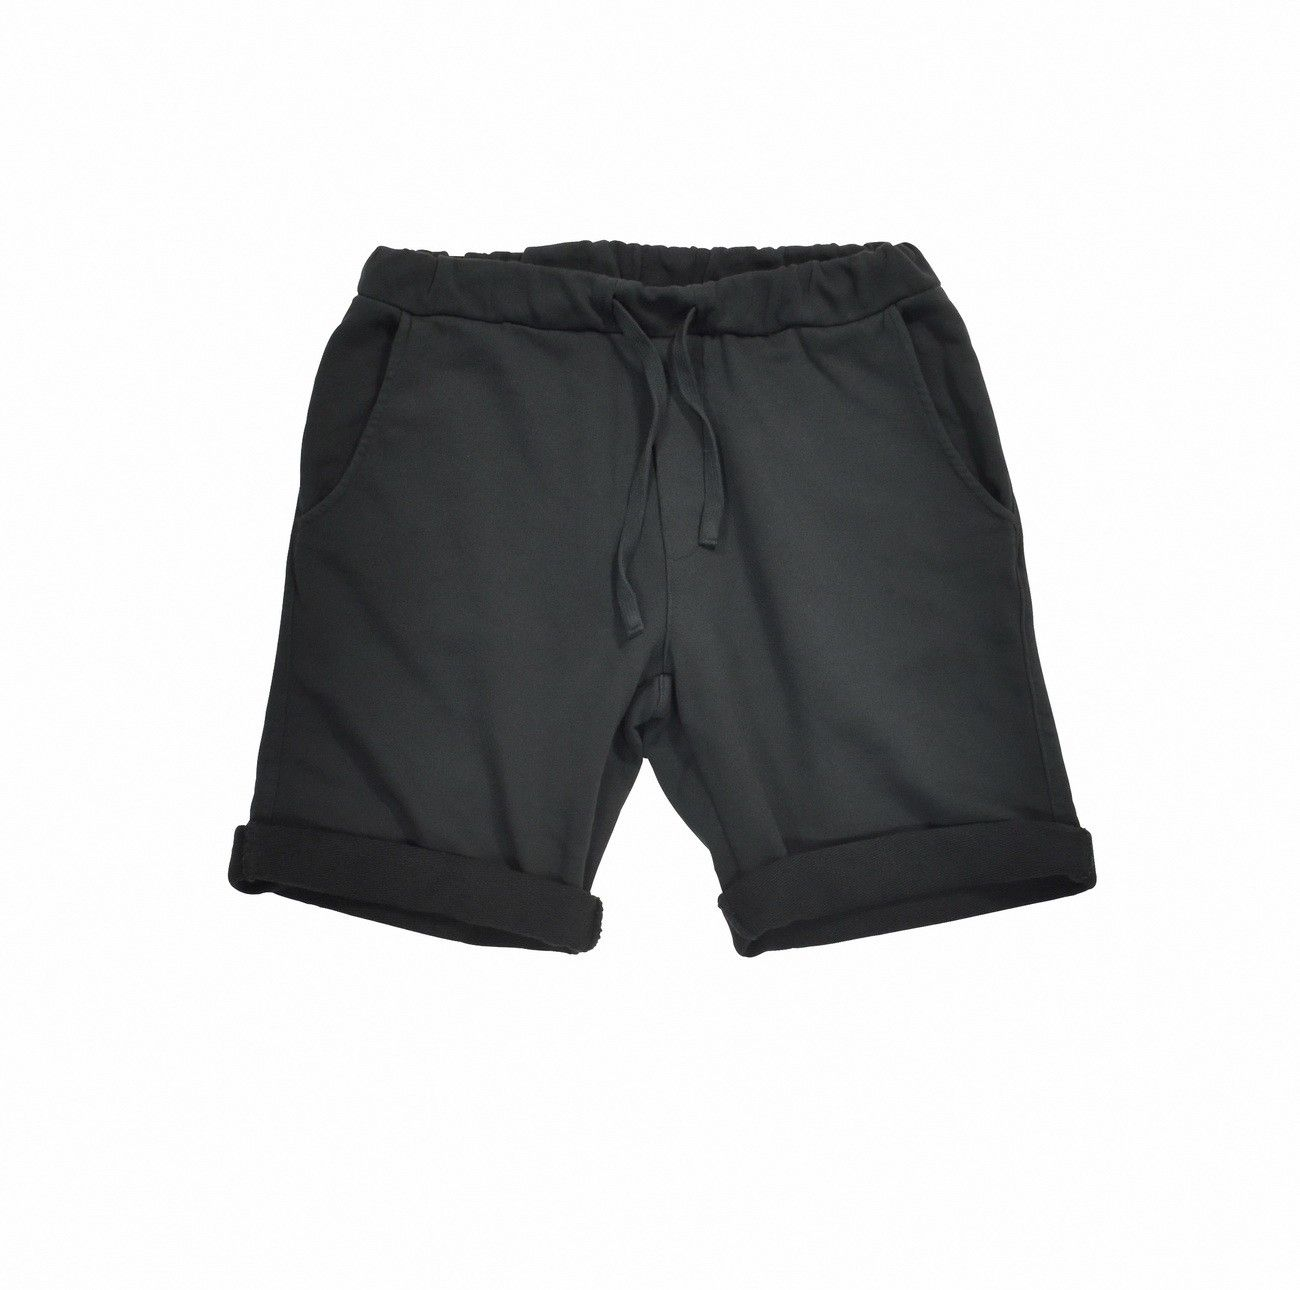 CROSSLEY - Herren Shorts - Man Shorts - Anthra